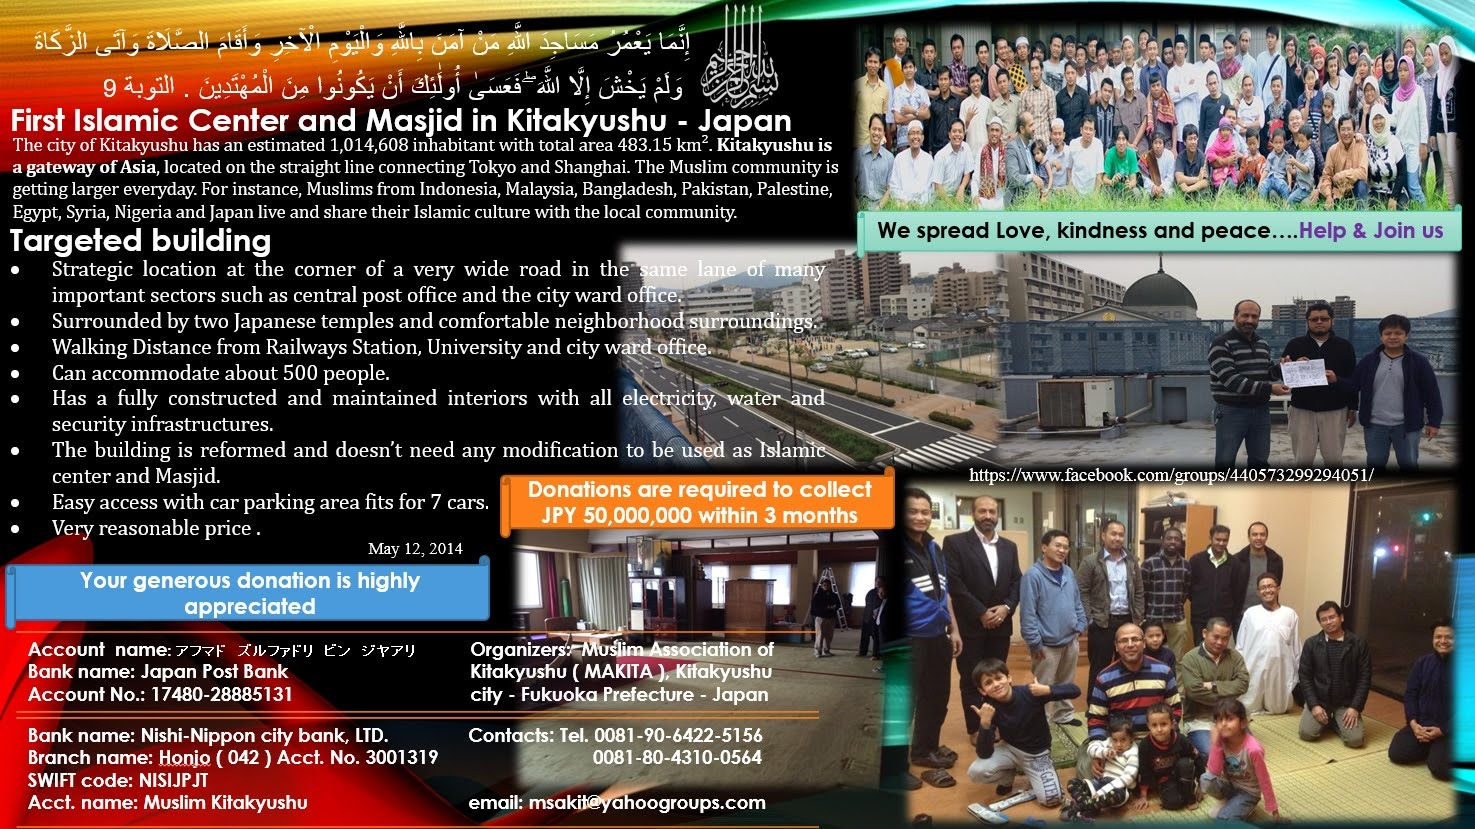 kitakyushu muslim dating site City of kitakyushu welcome to our reviews of the city of kitakyushu (also known as pick up artist woman) check out our top 10 list below and follow our links to read our full in-depth review of each online dating site, alongside which you'll find costs and features lists, user reviews and videos to help you make the right choice.